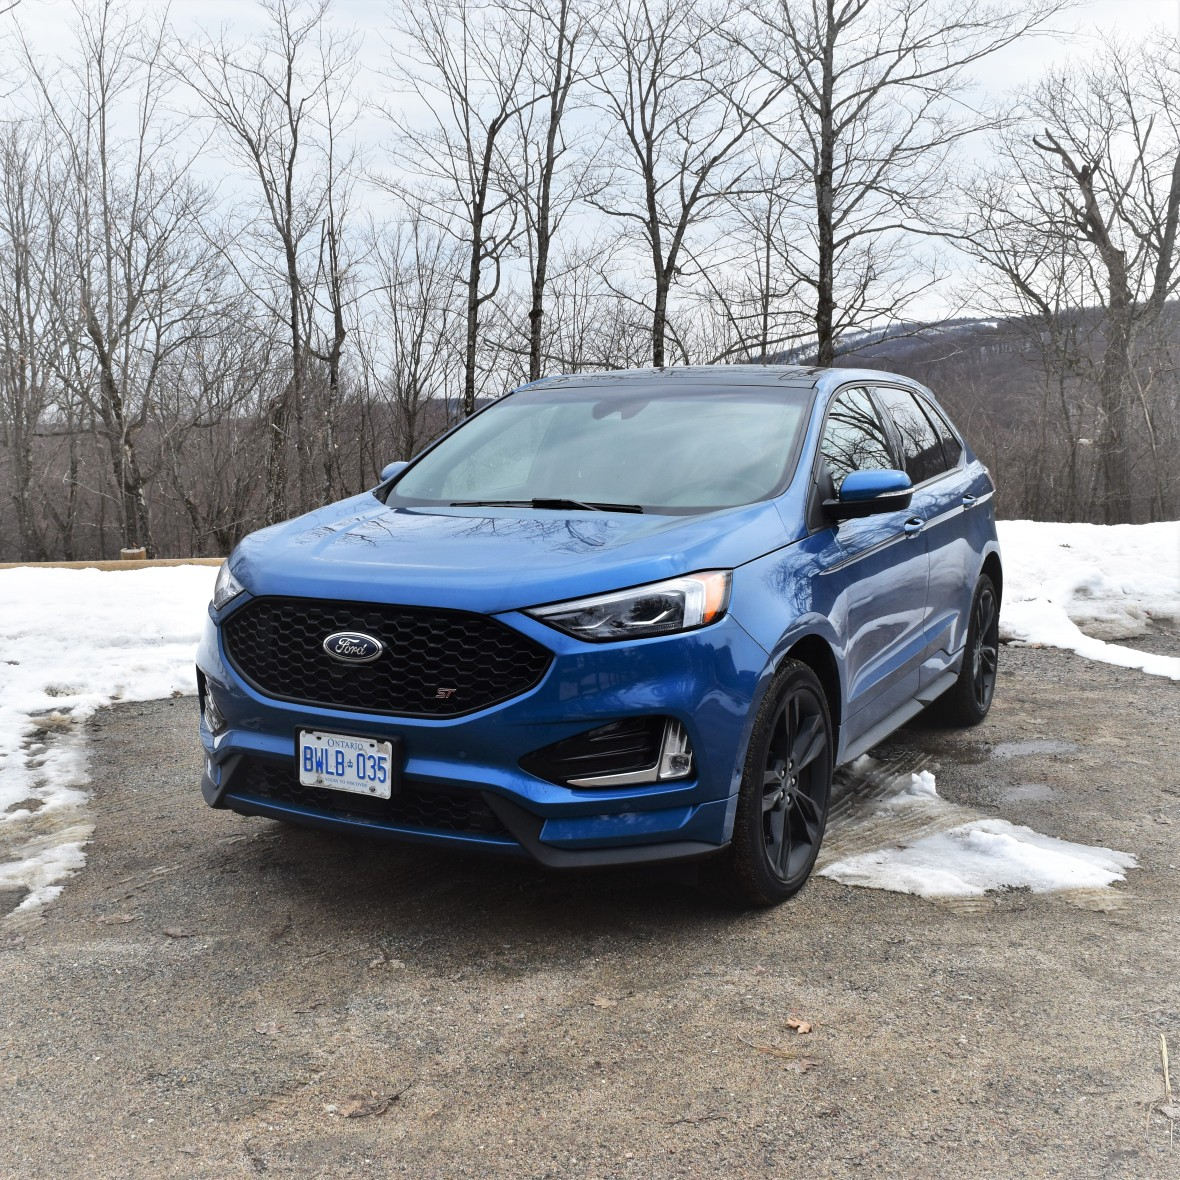 Road Tripping With The 2019 Ford Edge ST!!